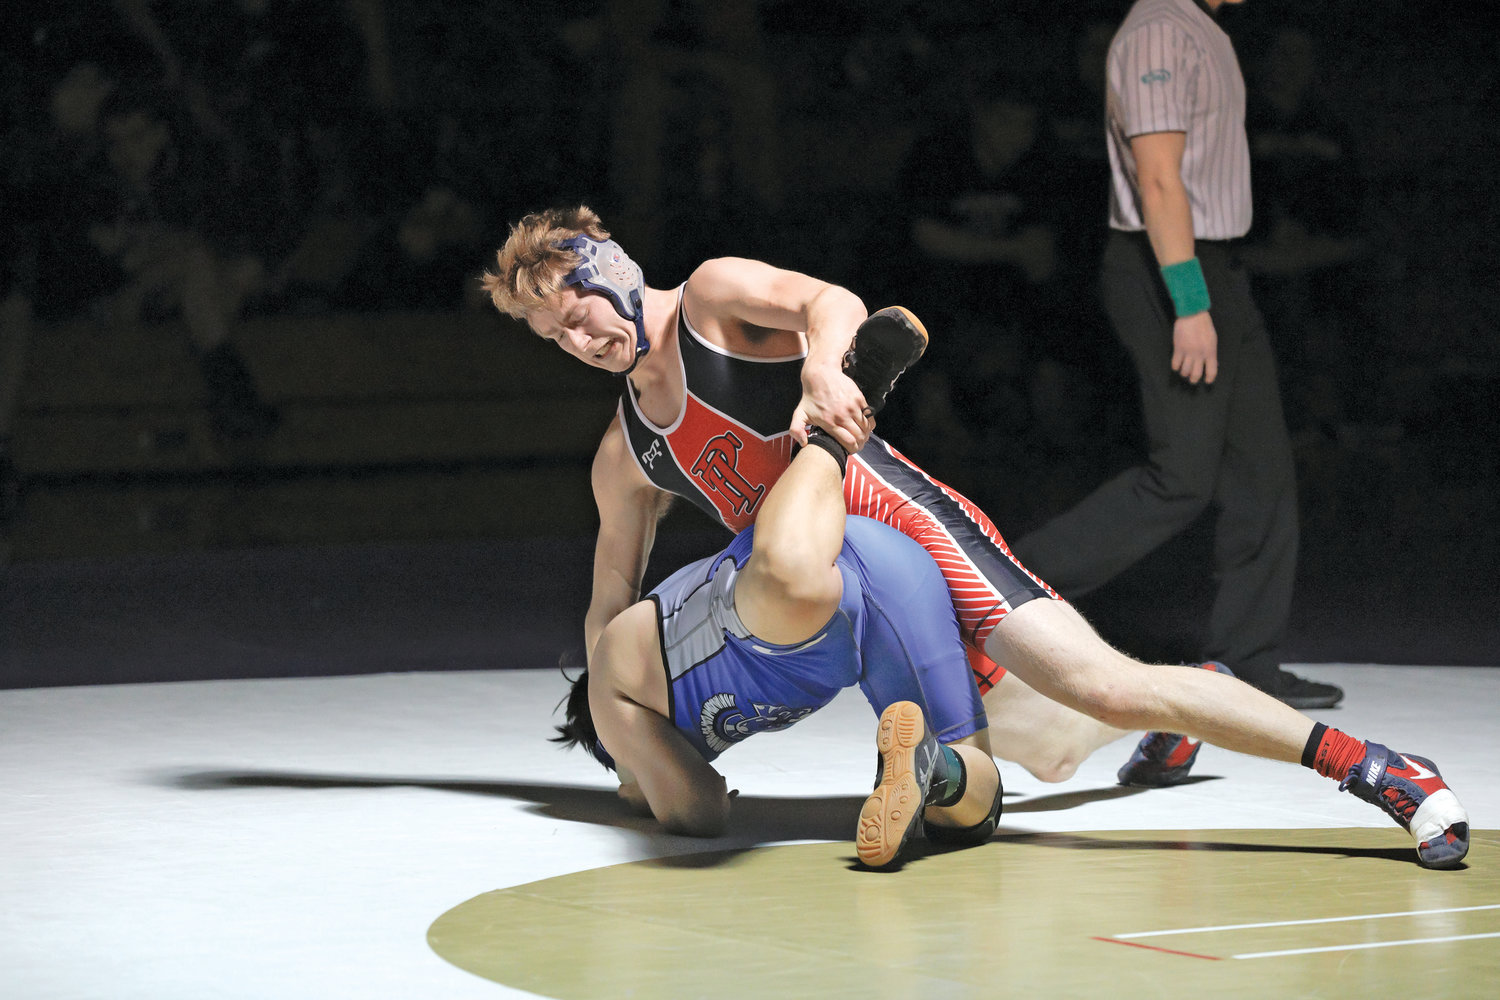 Head down, leg up, Port Townsend's Wes Blue manipulates his opponent's body like a toy figurine.